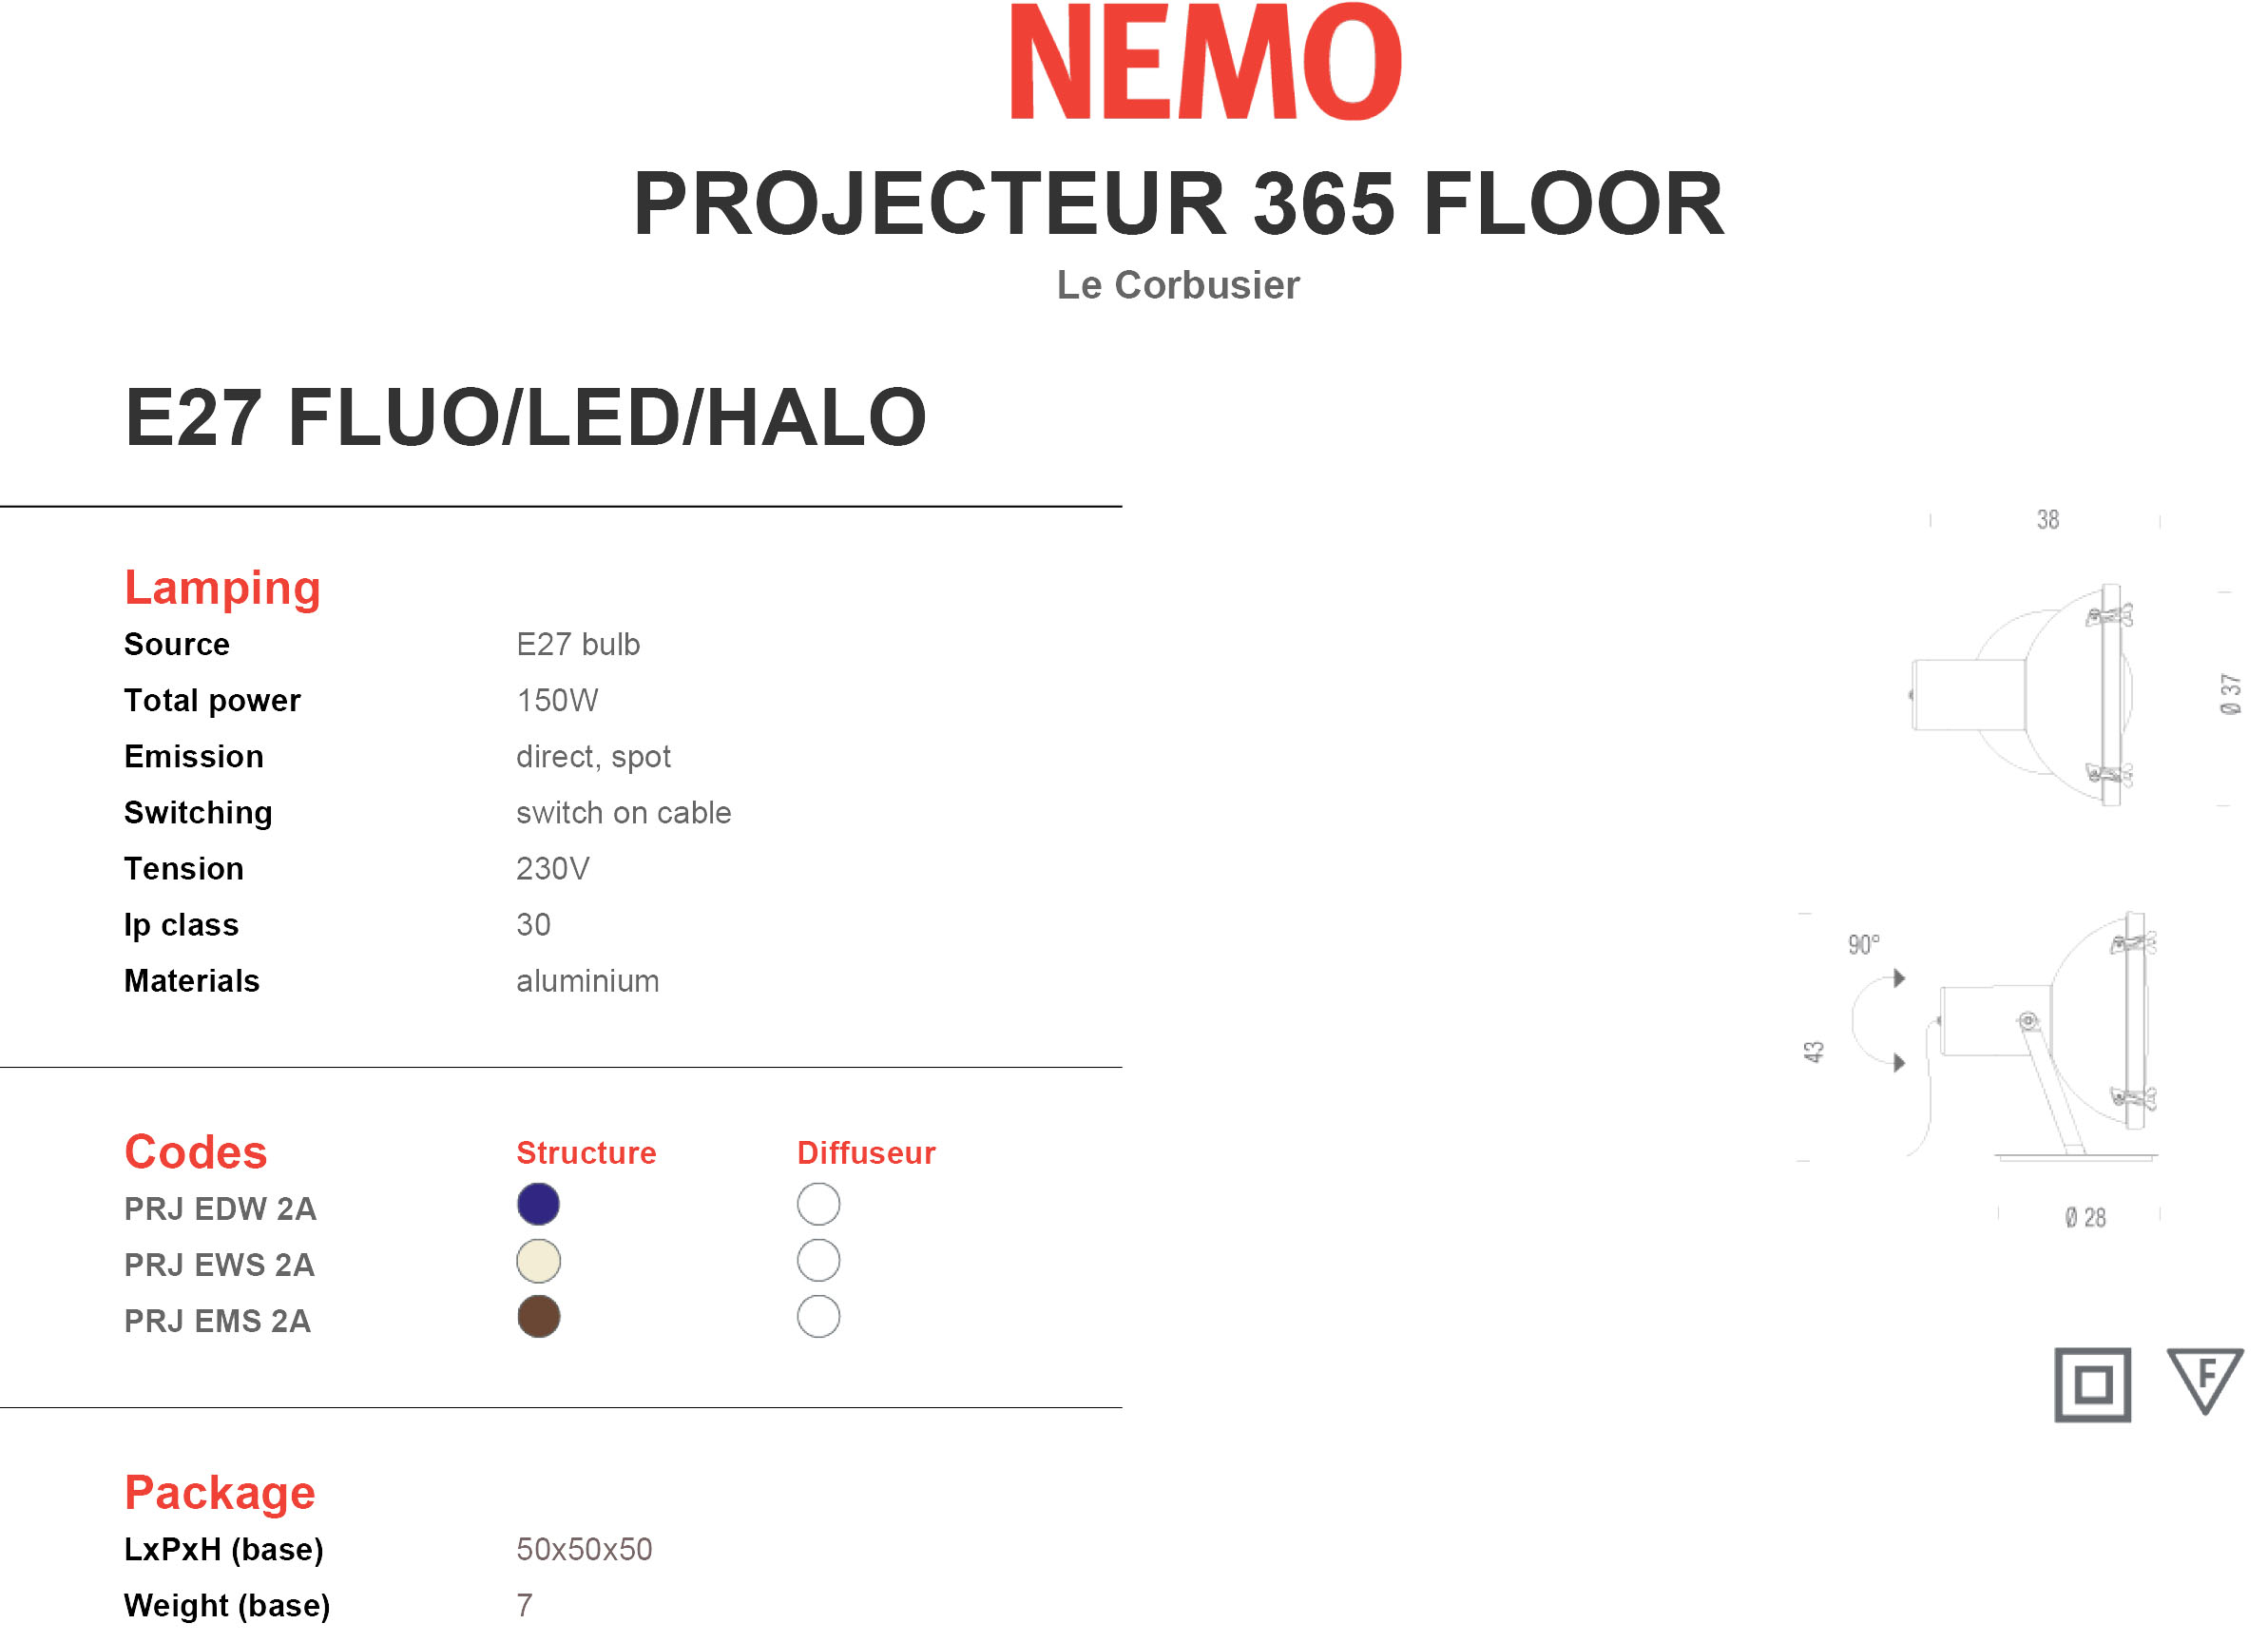 Nemo Lighting Projecteur 365 Floor Tech